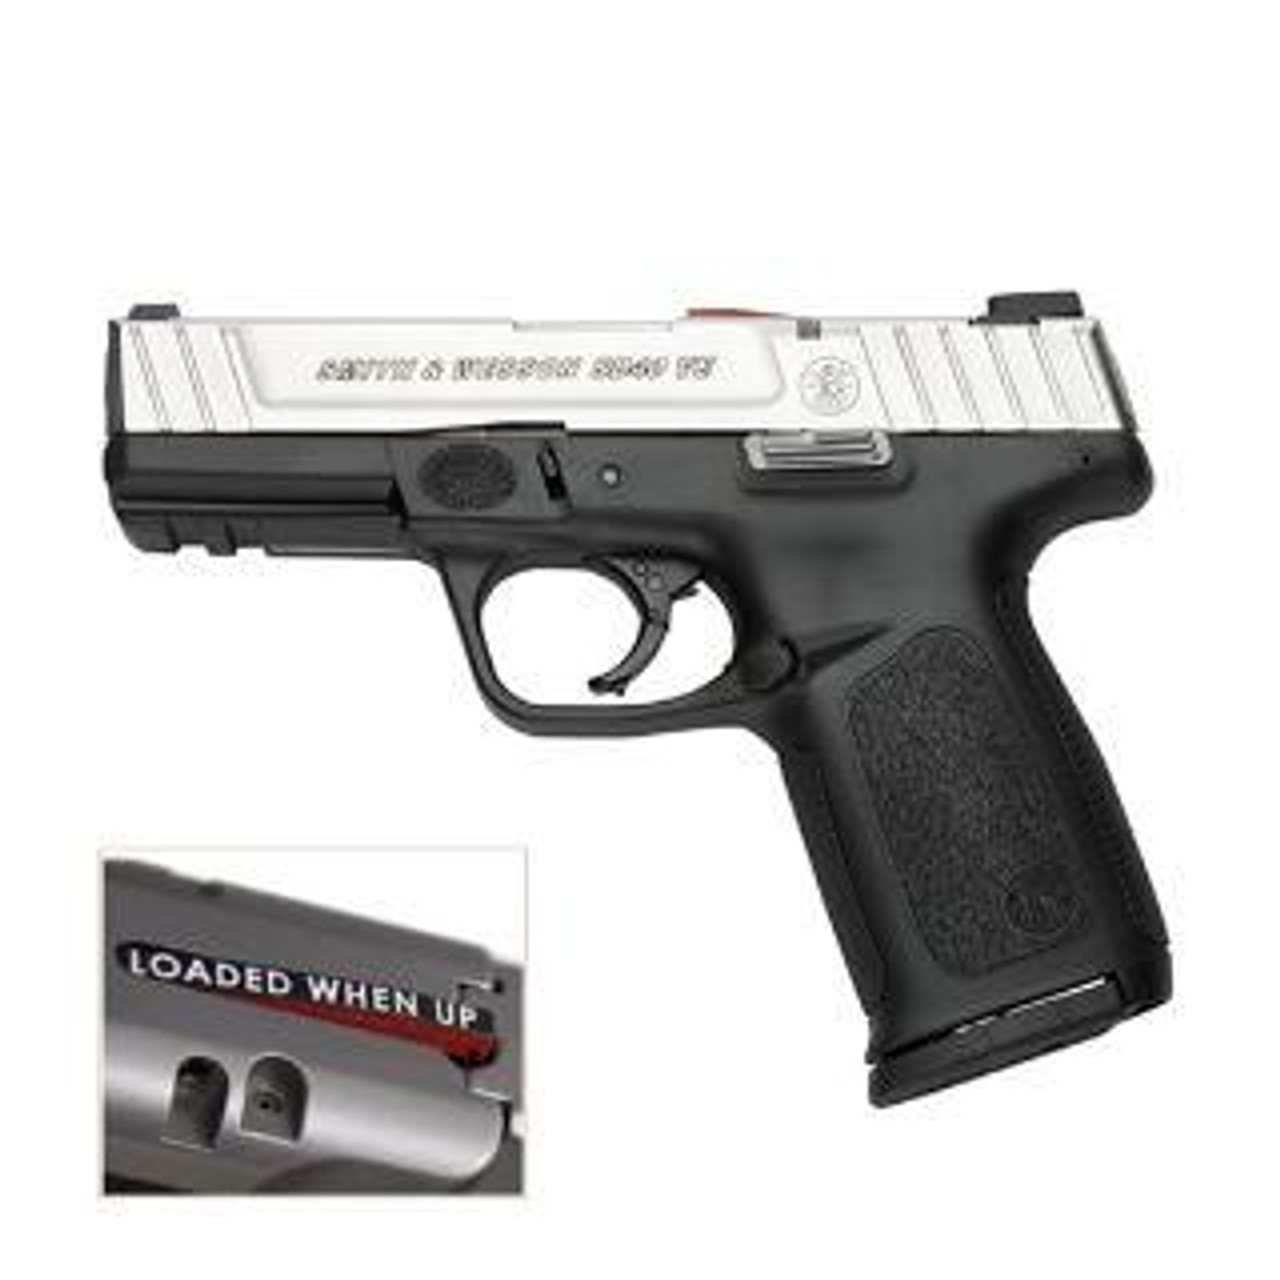 Smith & Wesson SD40 VE - California Legal